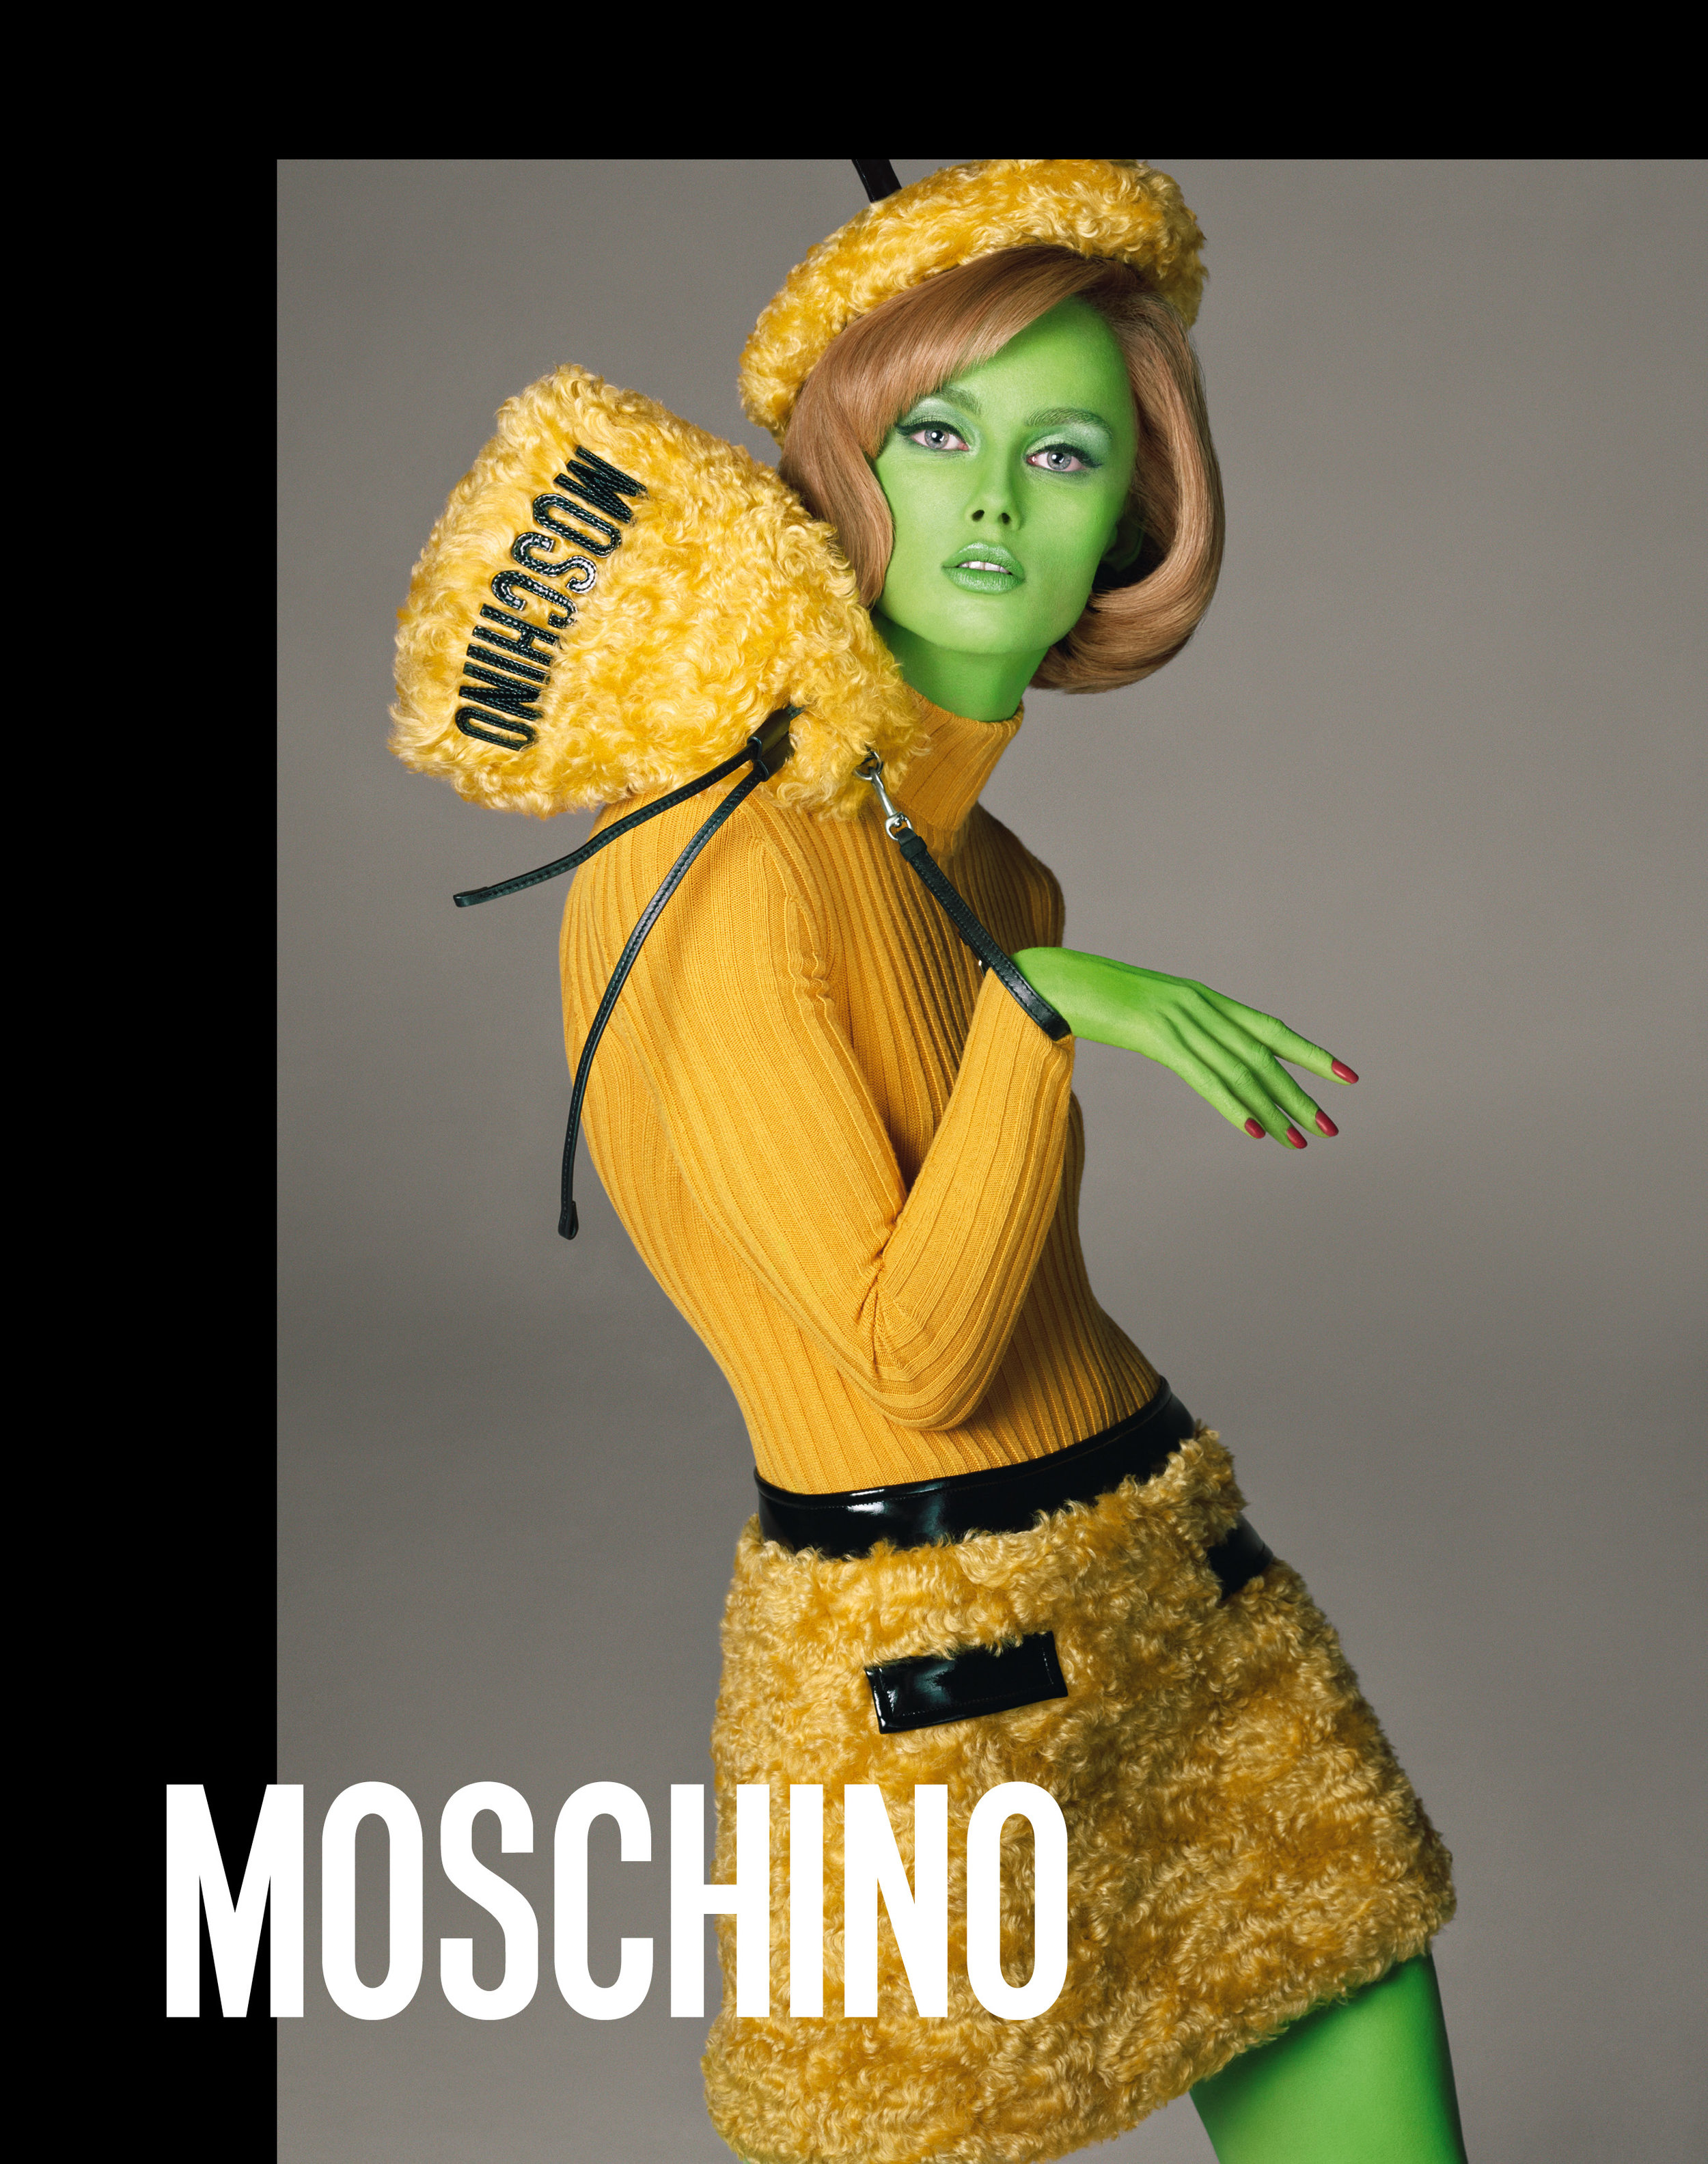 Moschino_3_e4_moschino_fw_18_19_adv_campaign_images_-_rianne_van_rompaey.jpg